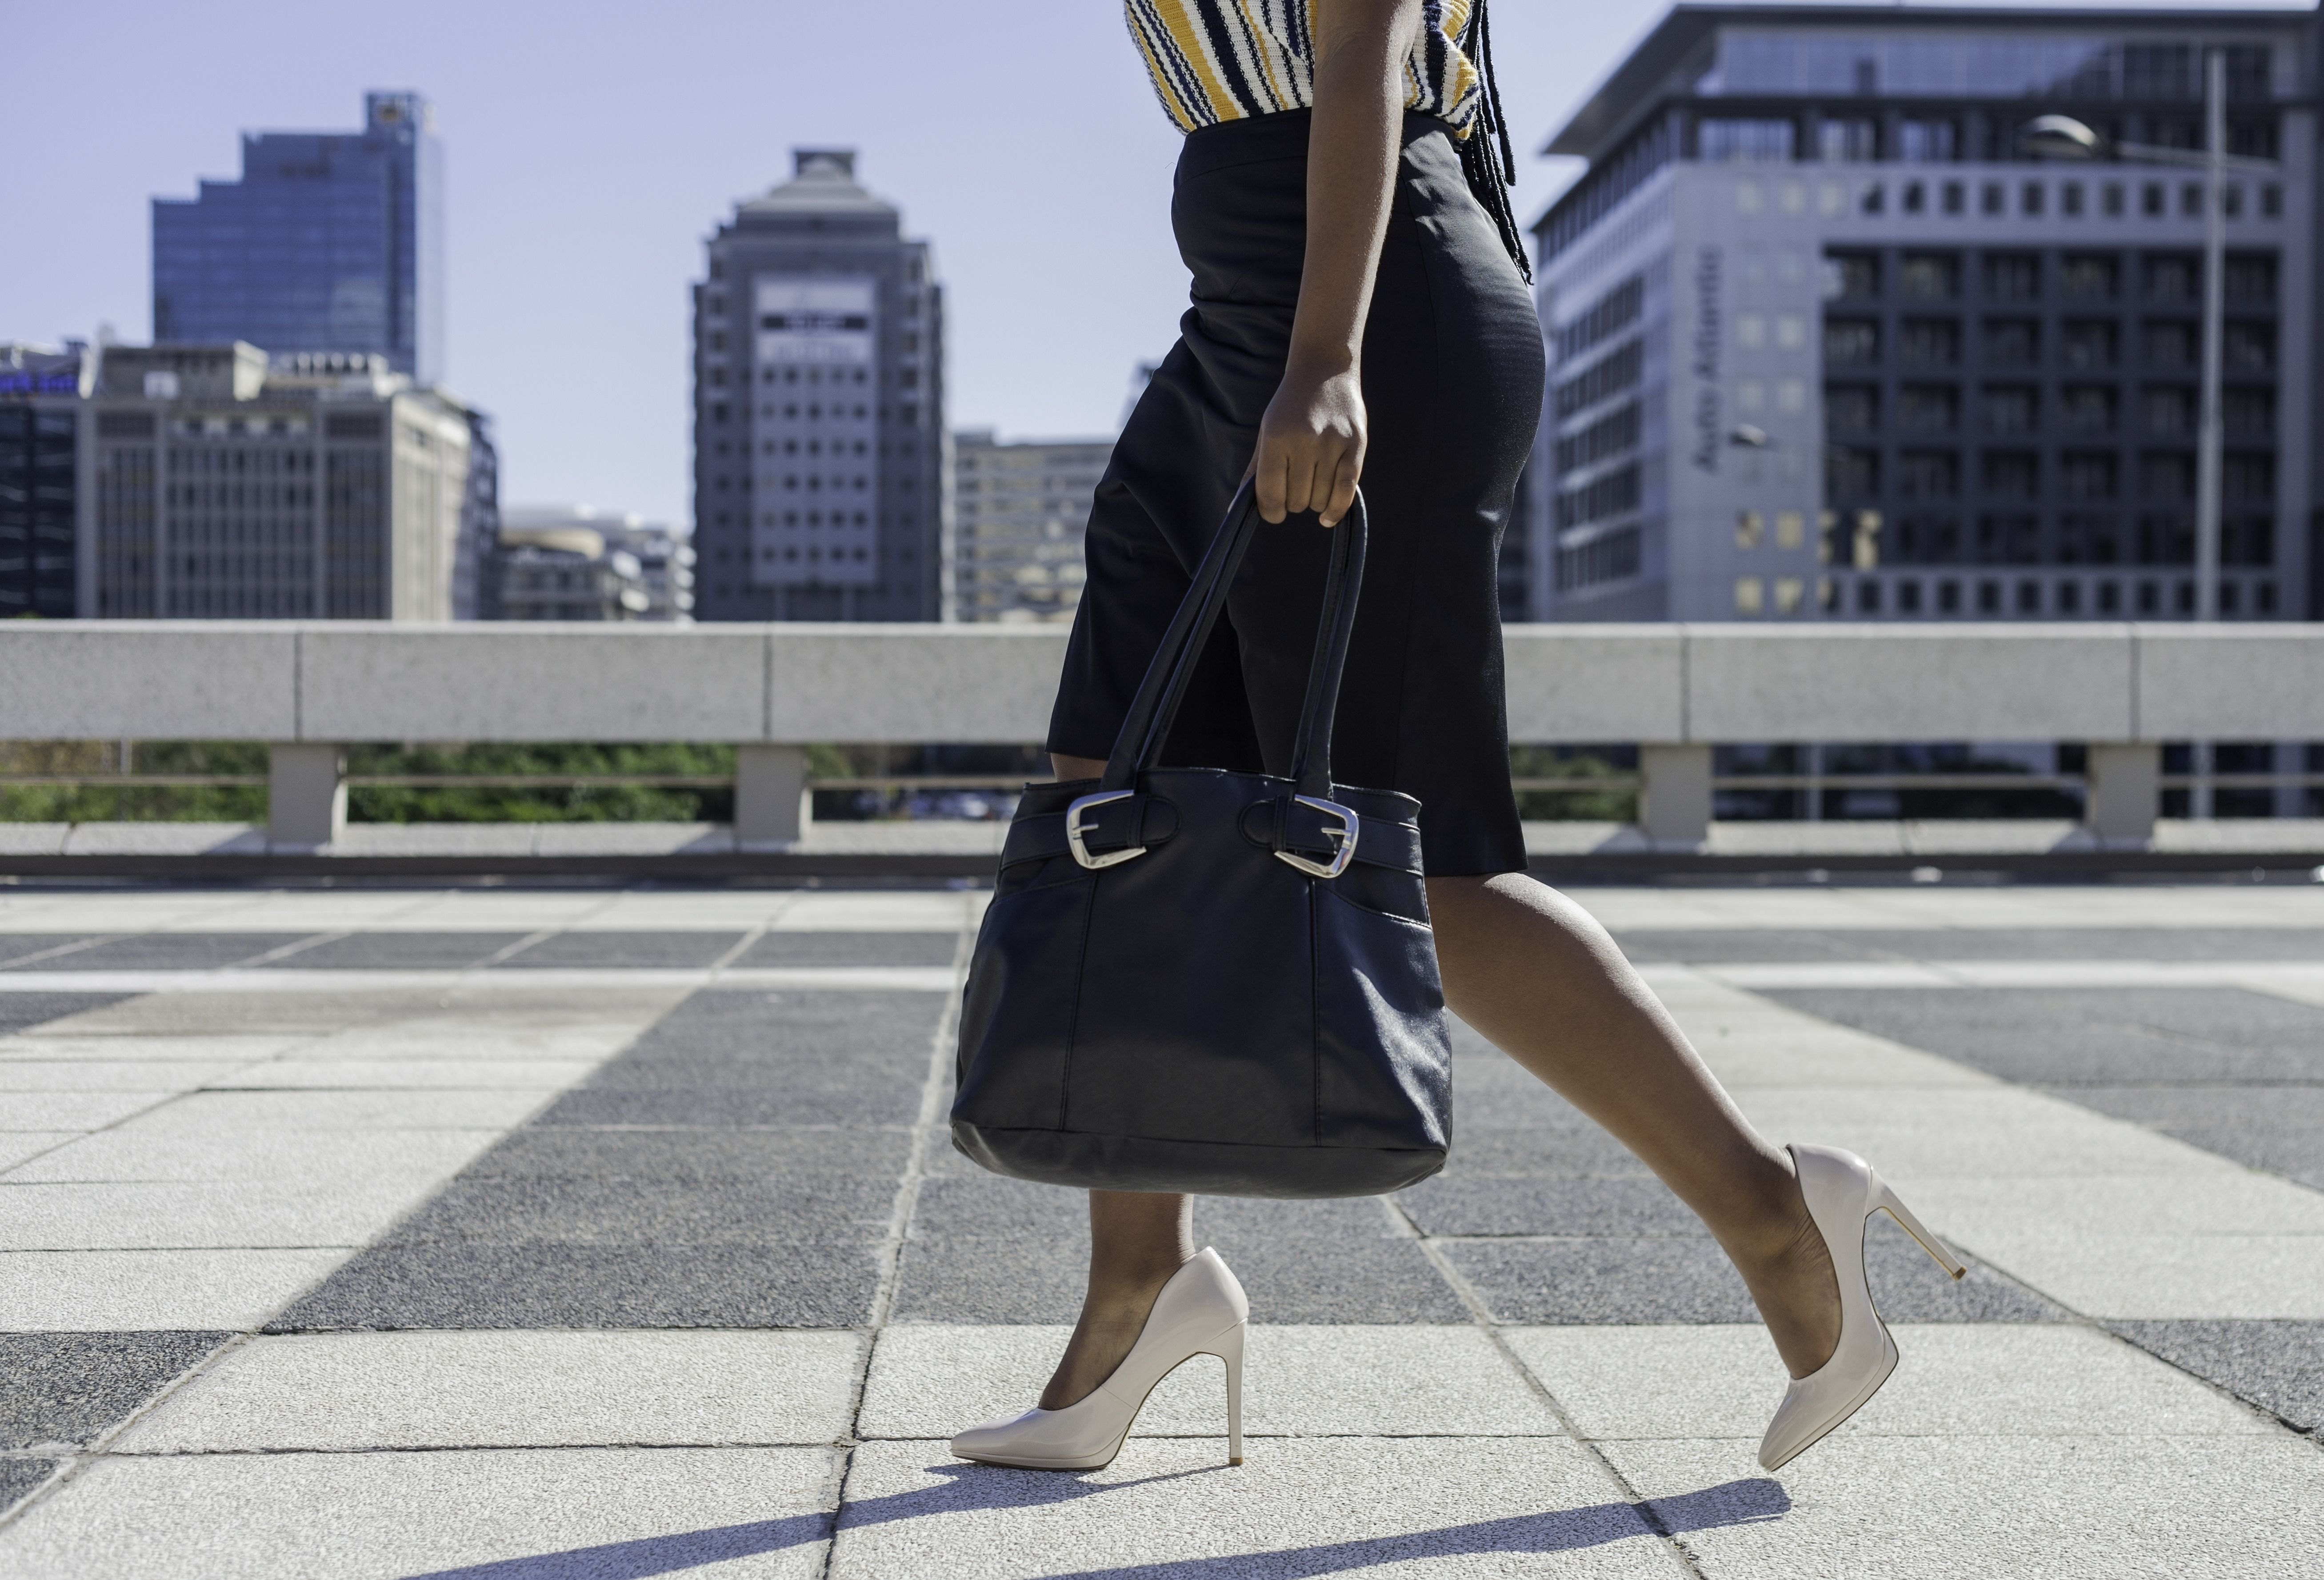 Businesswoman in high heels walking through the city with her purse in hand.